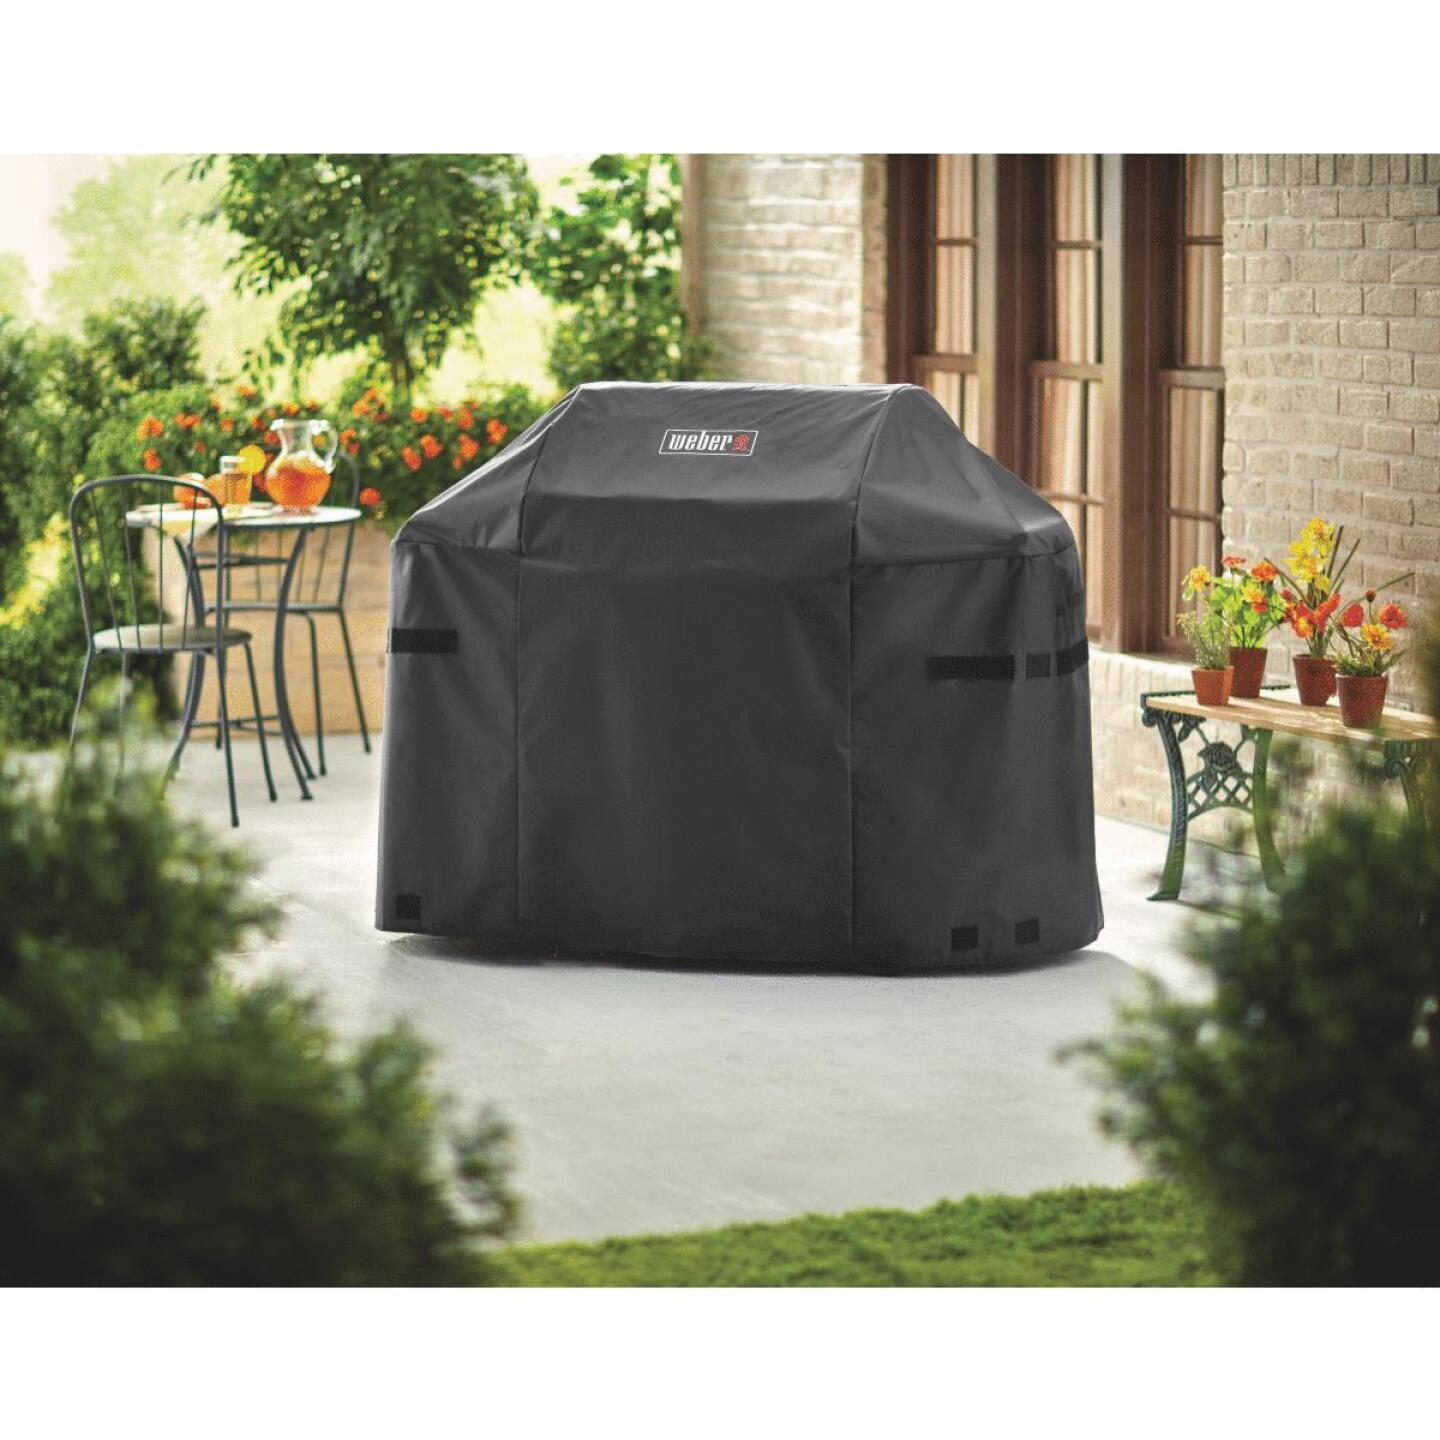 Weber Spirit II 51 In. 3-Burner Black Polyester Gas Grill Cover Image 3